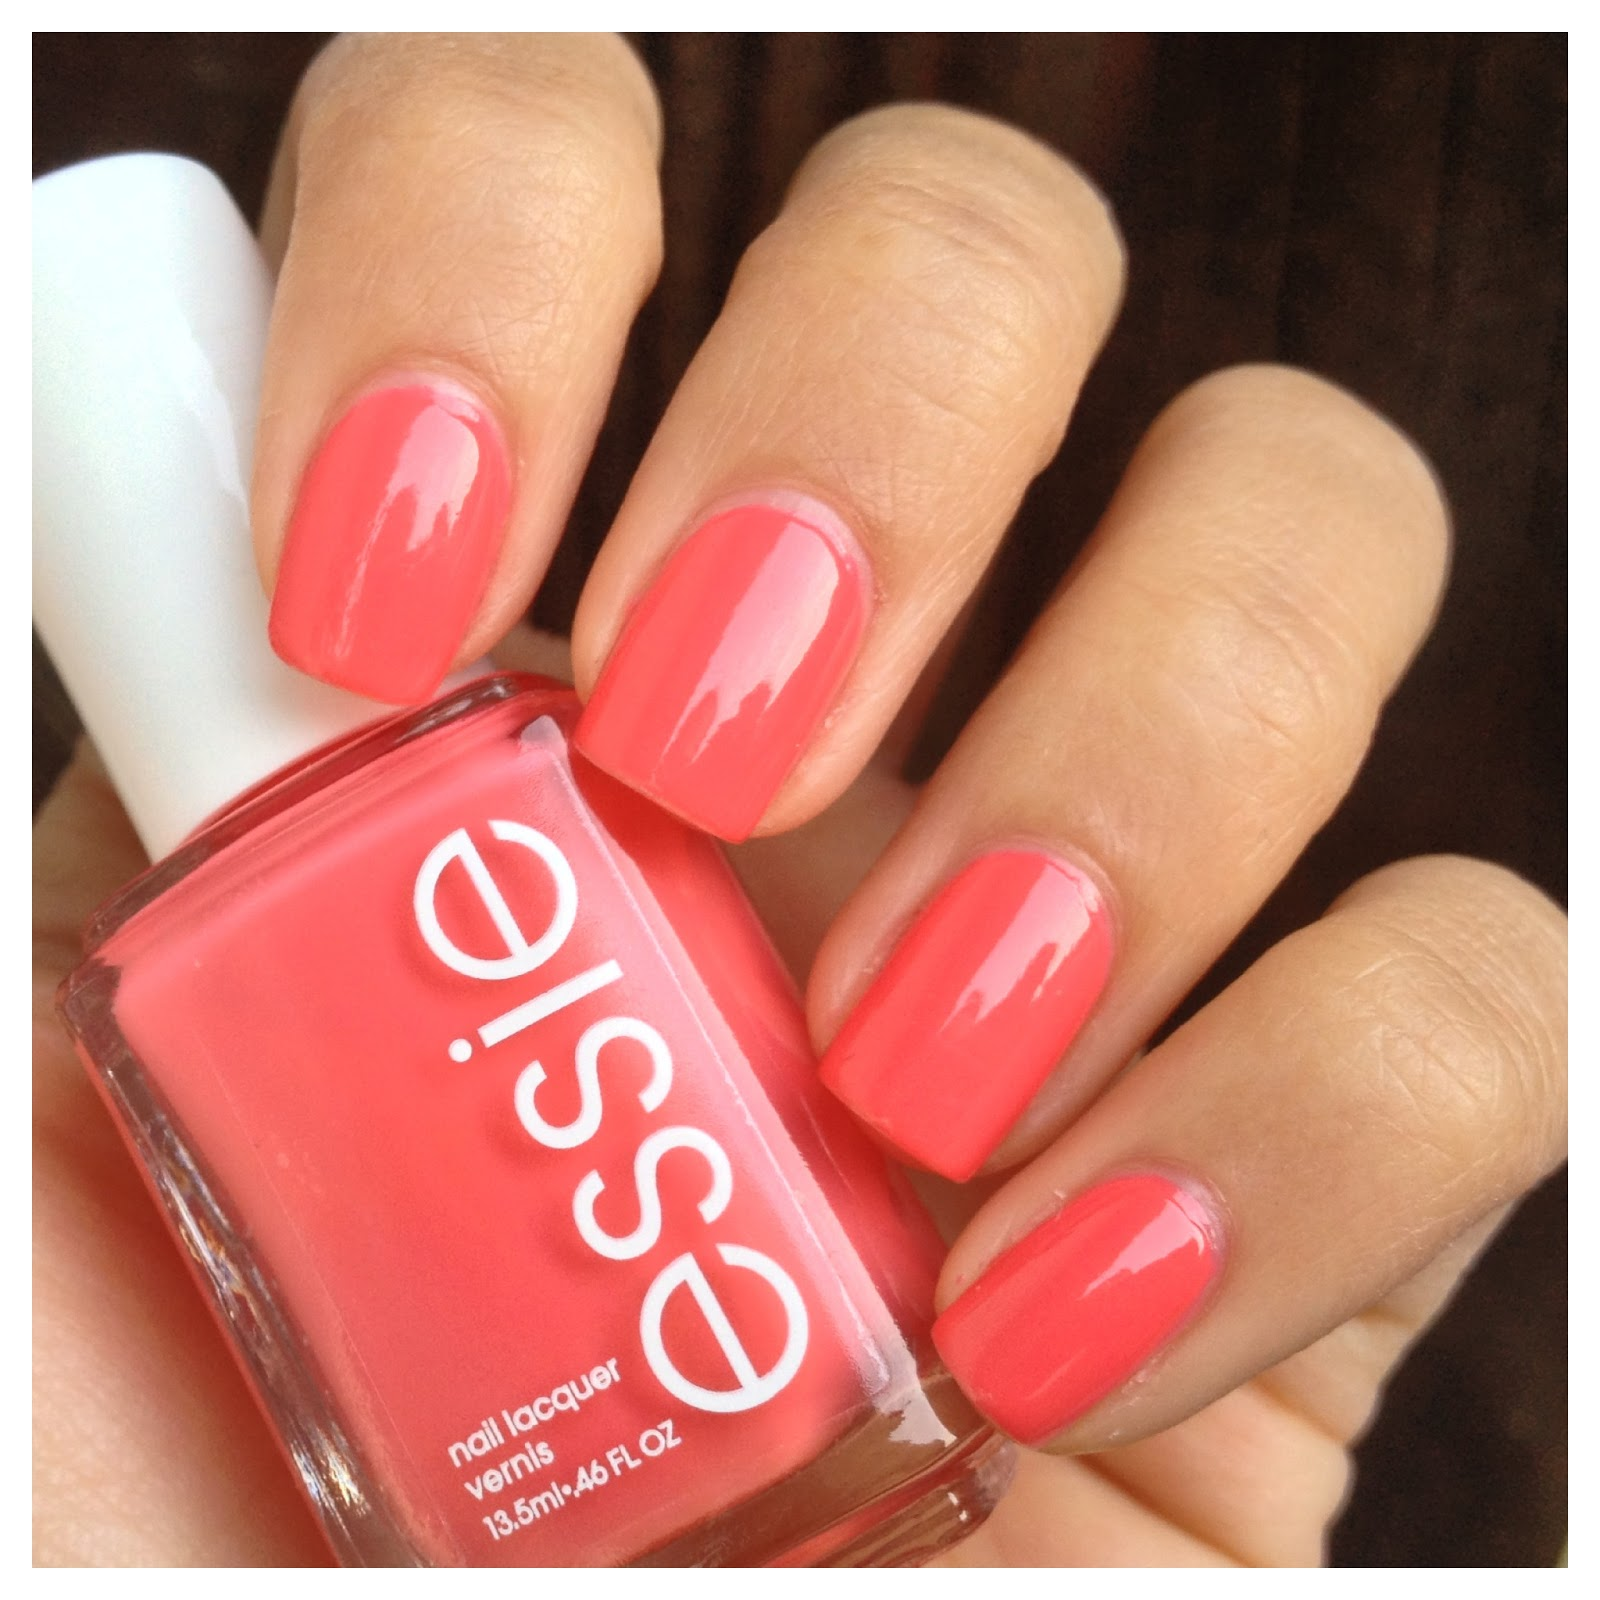 Cute Nail Polish Colors For Summer: What I Blog About When I Blog About Books: NOTD: Essie